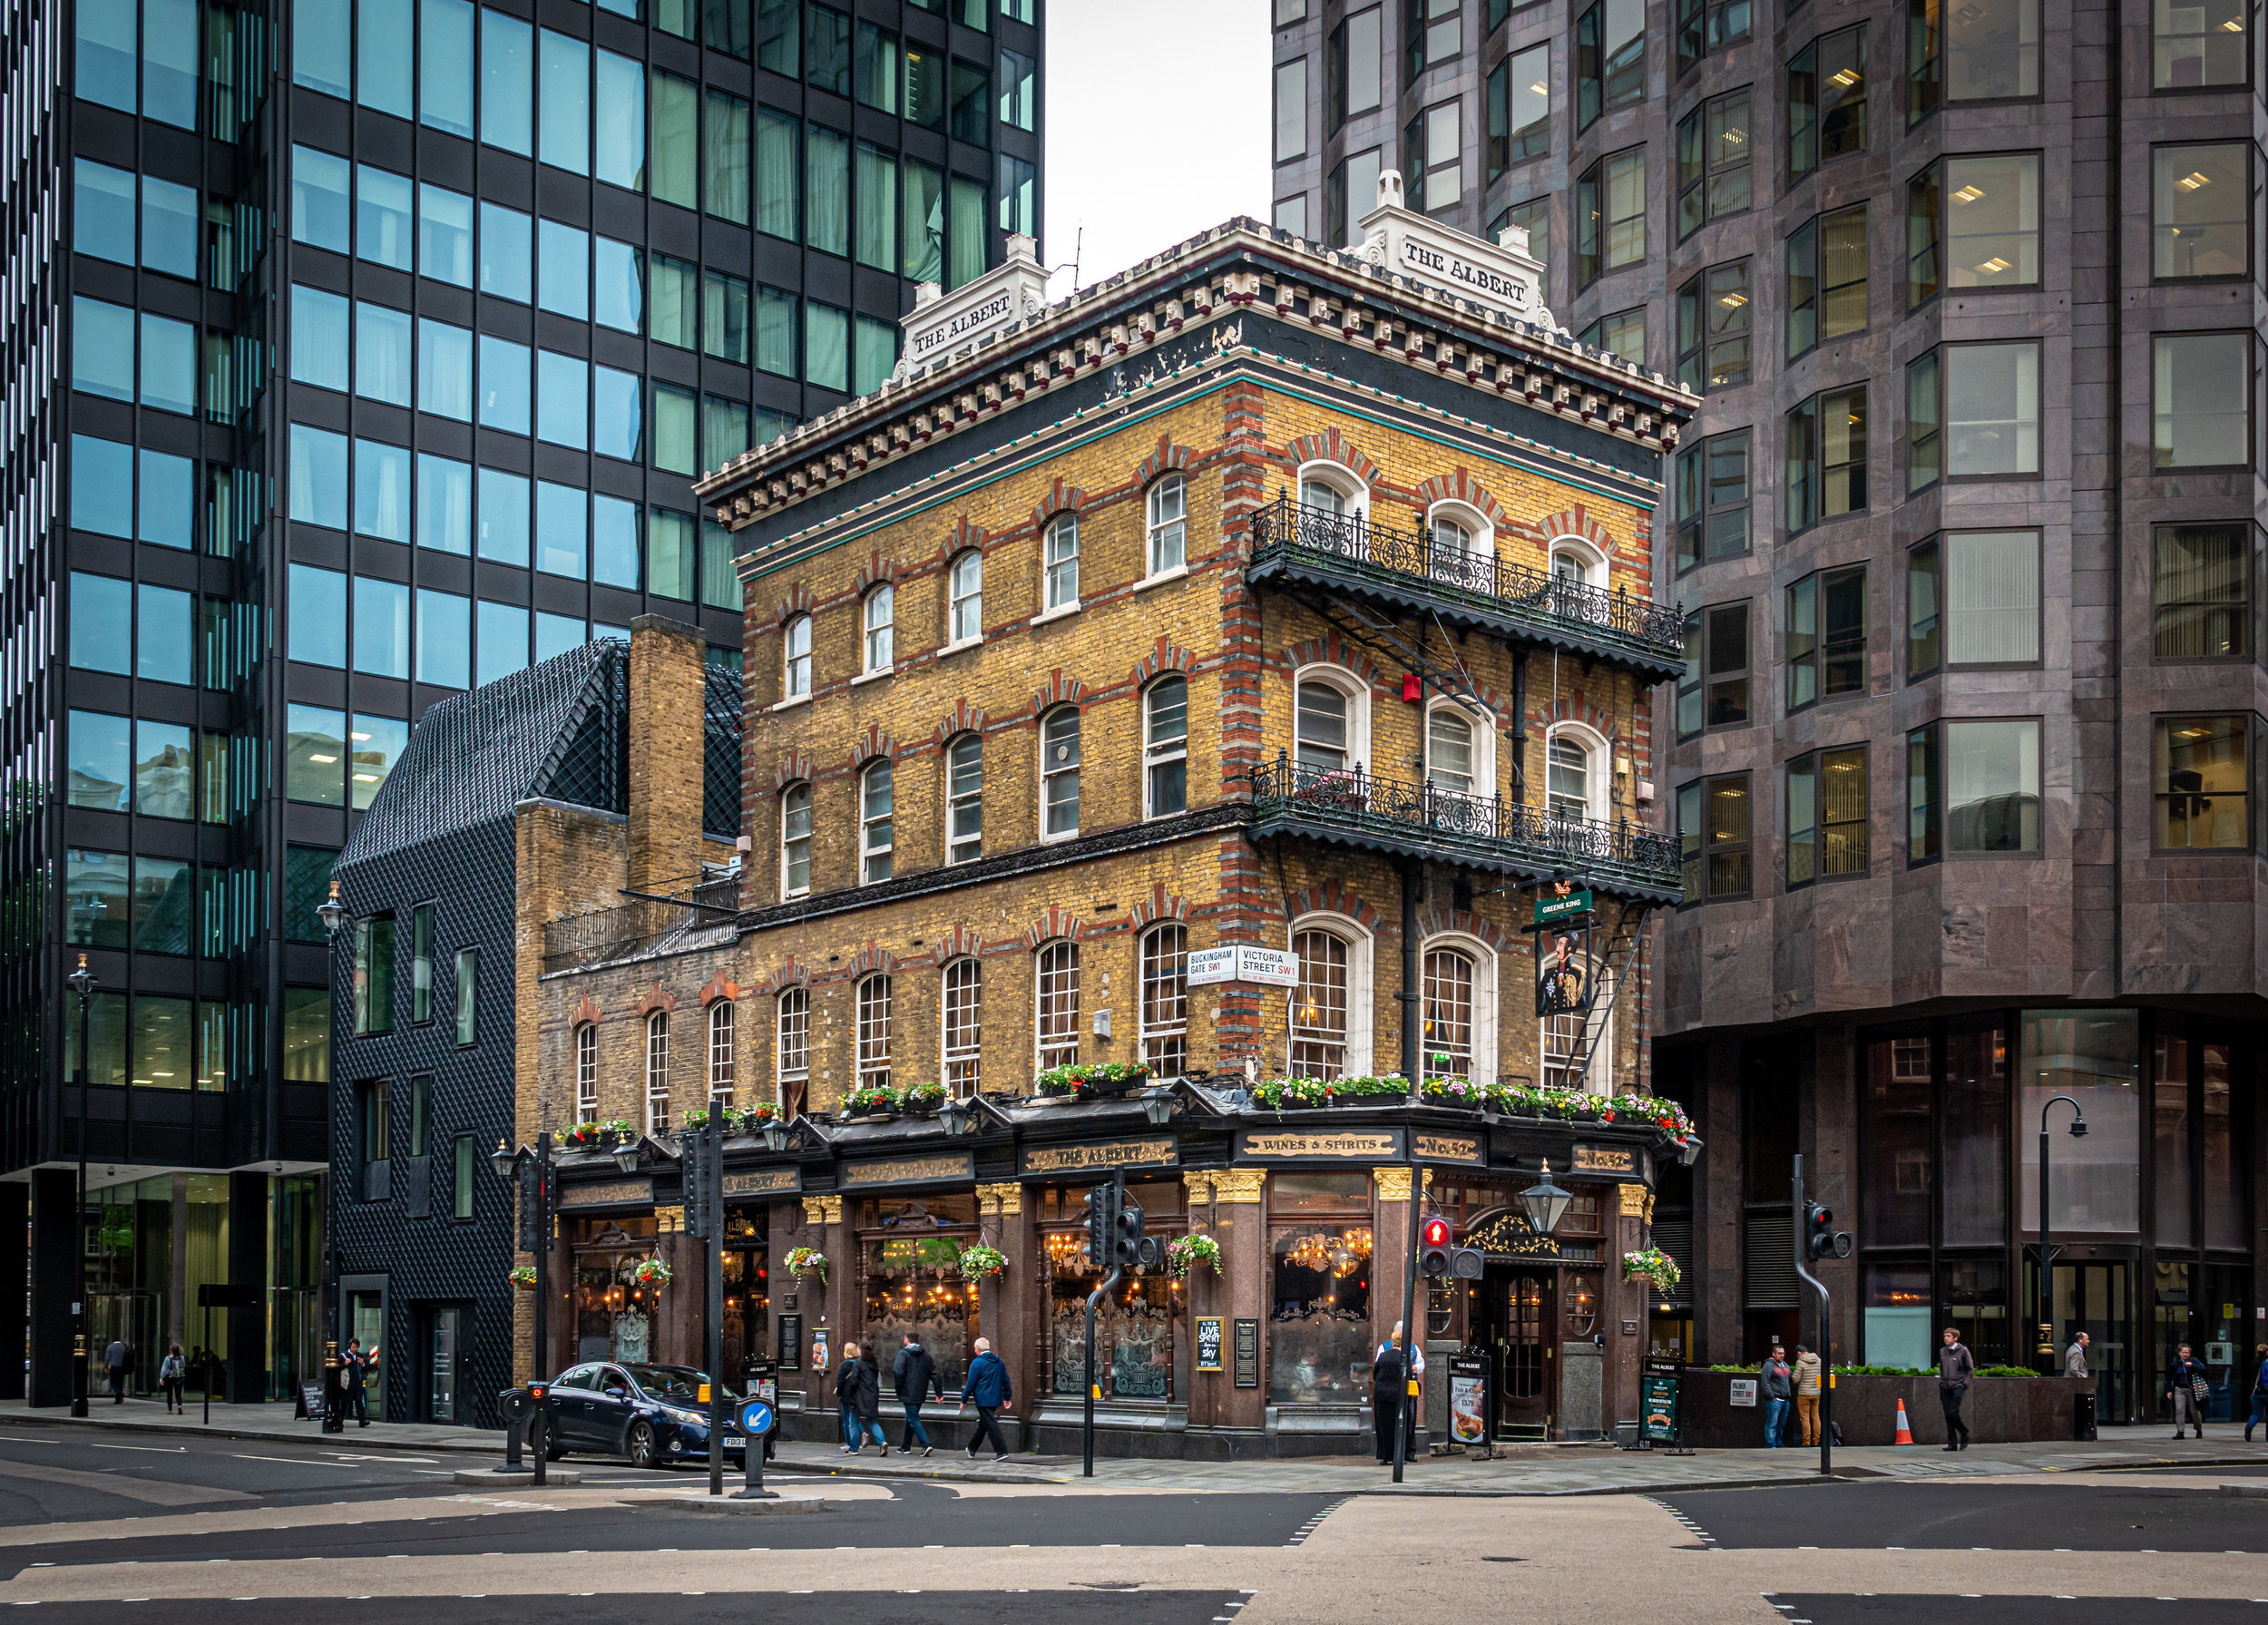 The Albert is a 250 year-old pub. One of my favorite things about London is all of the contrasts you constantly see. NYC used to be like that.